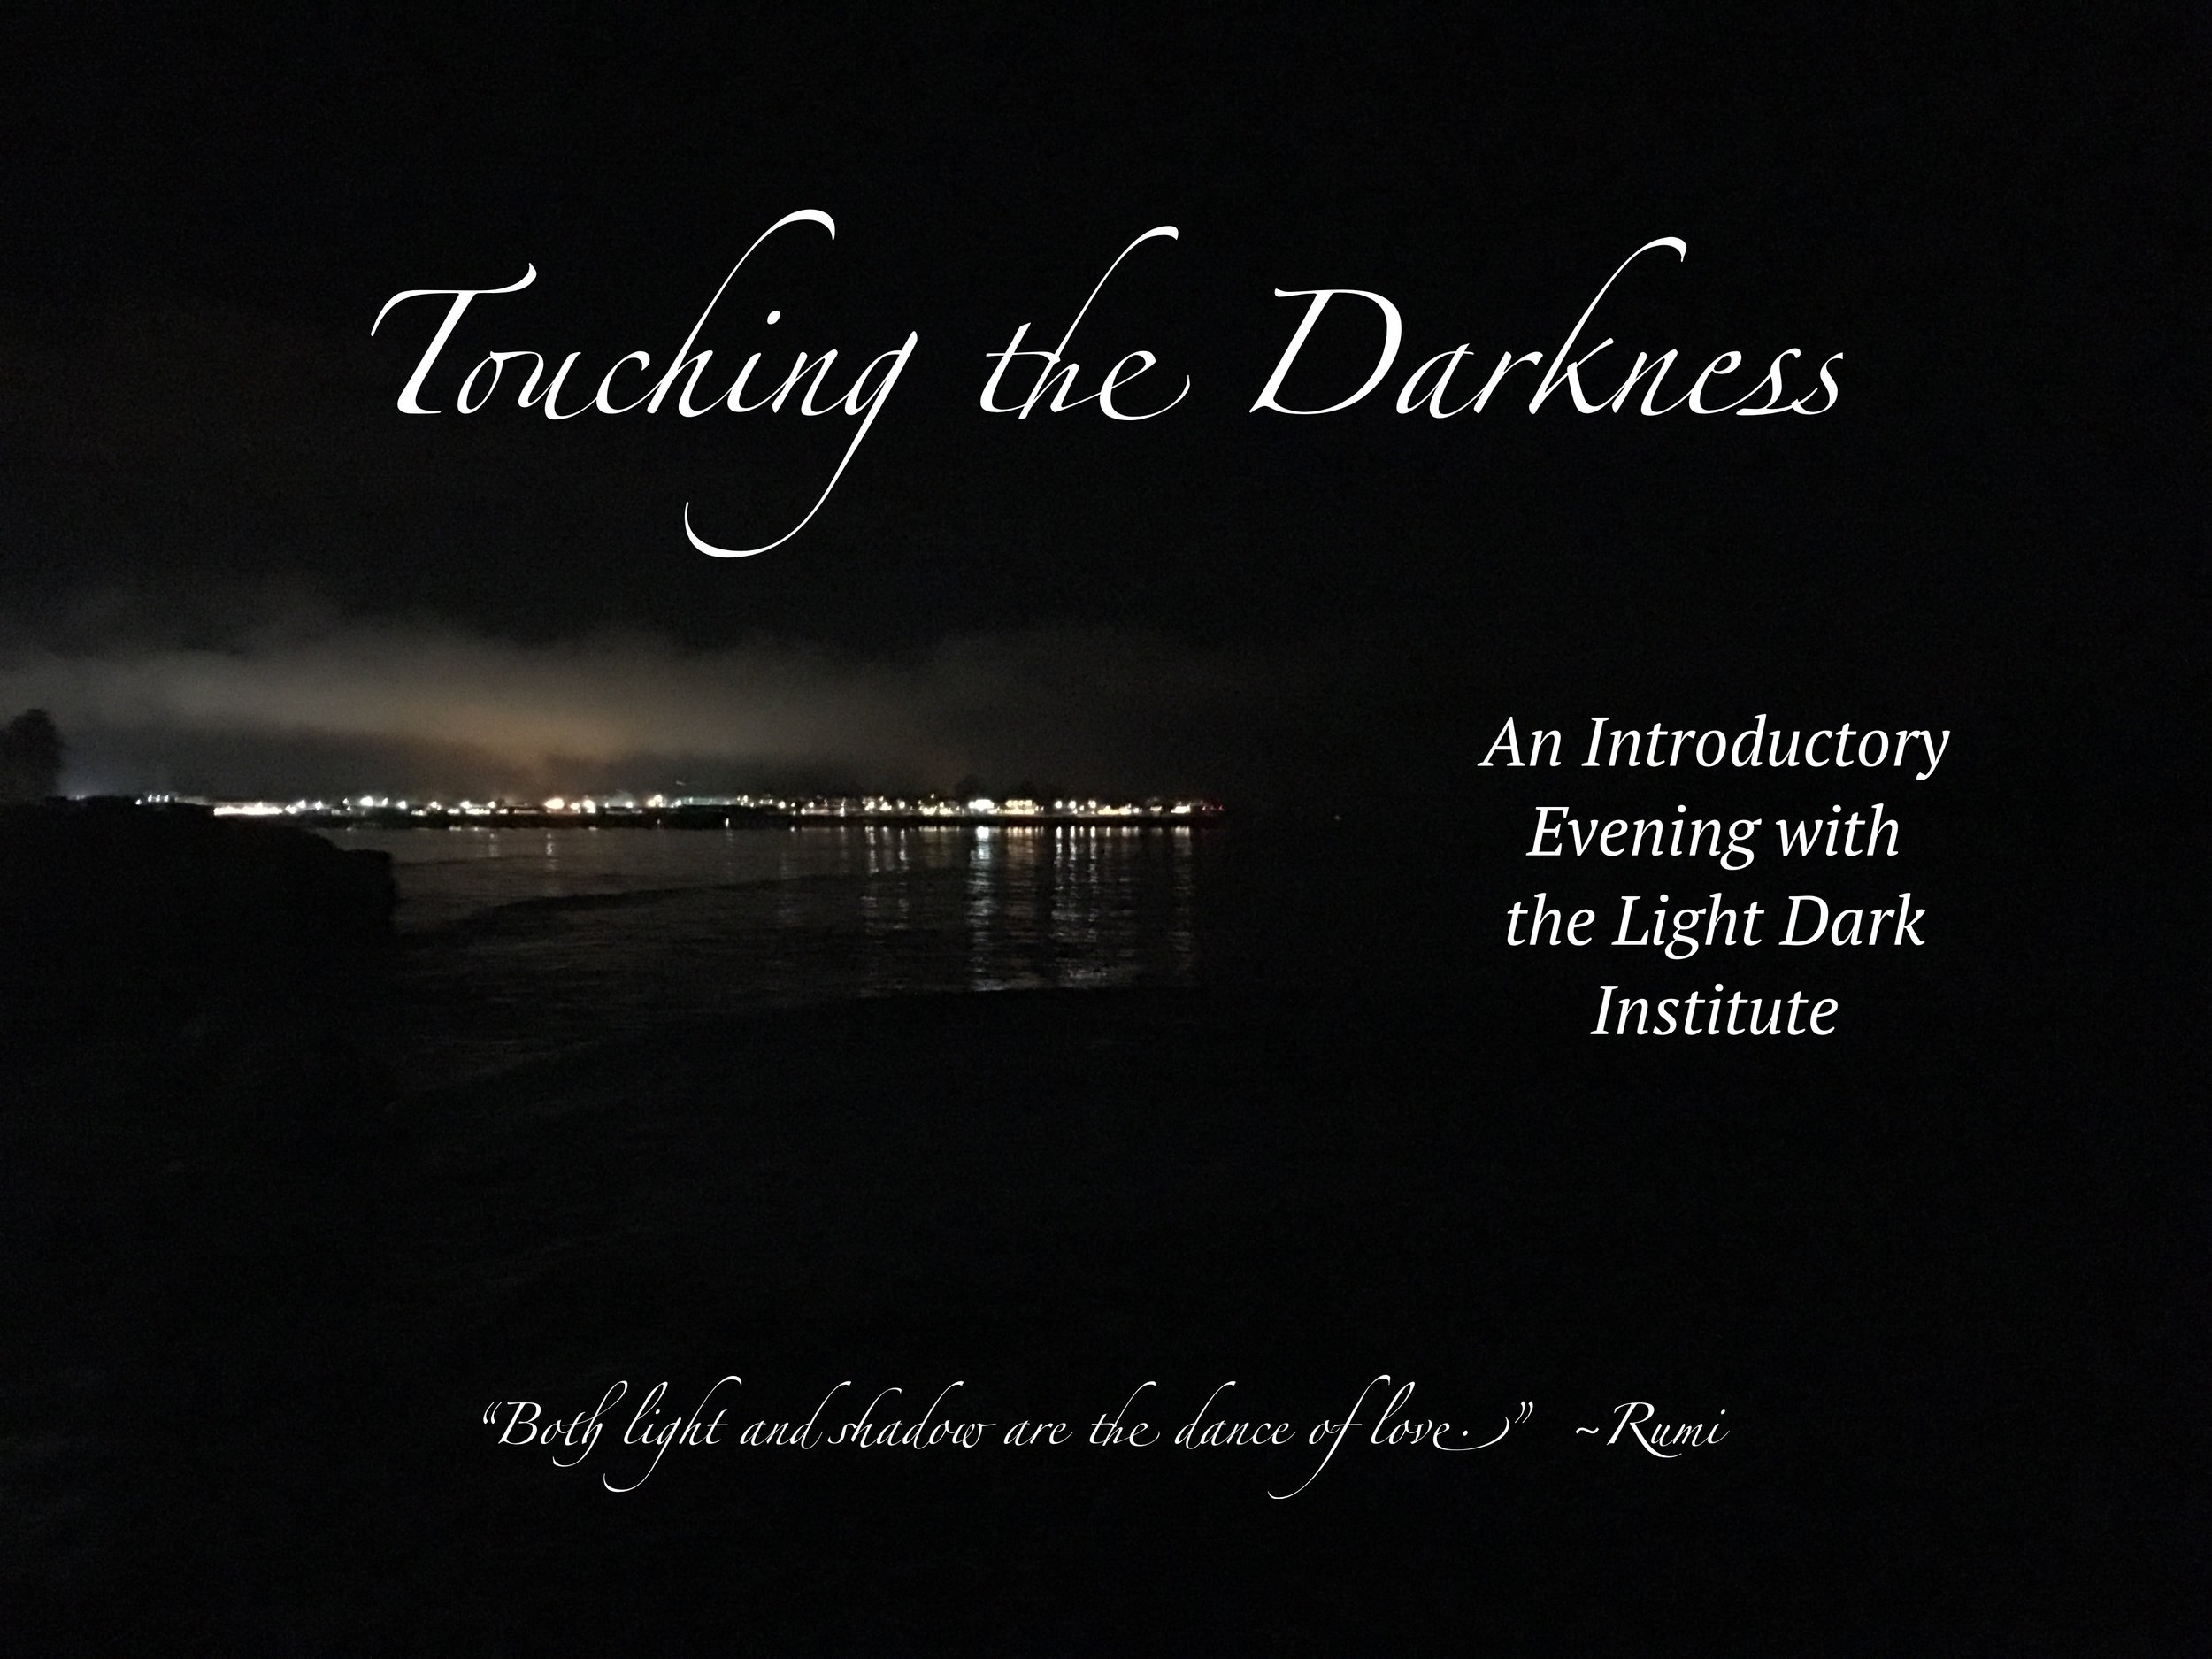 Touching the Darkness intro image.JPG